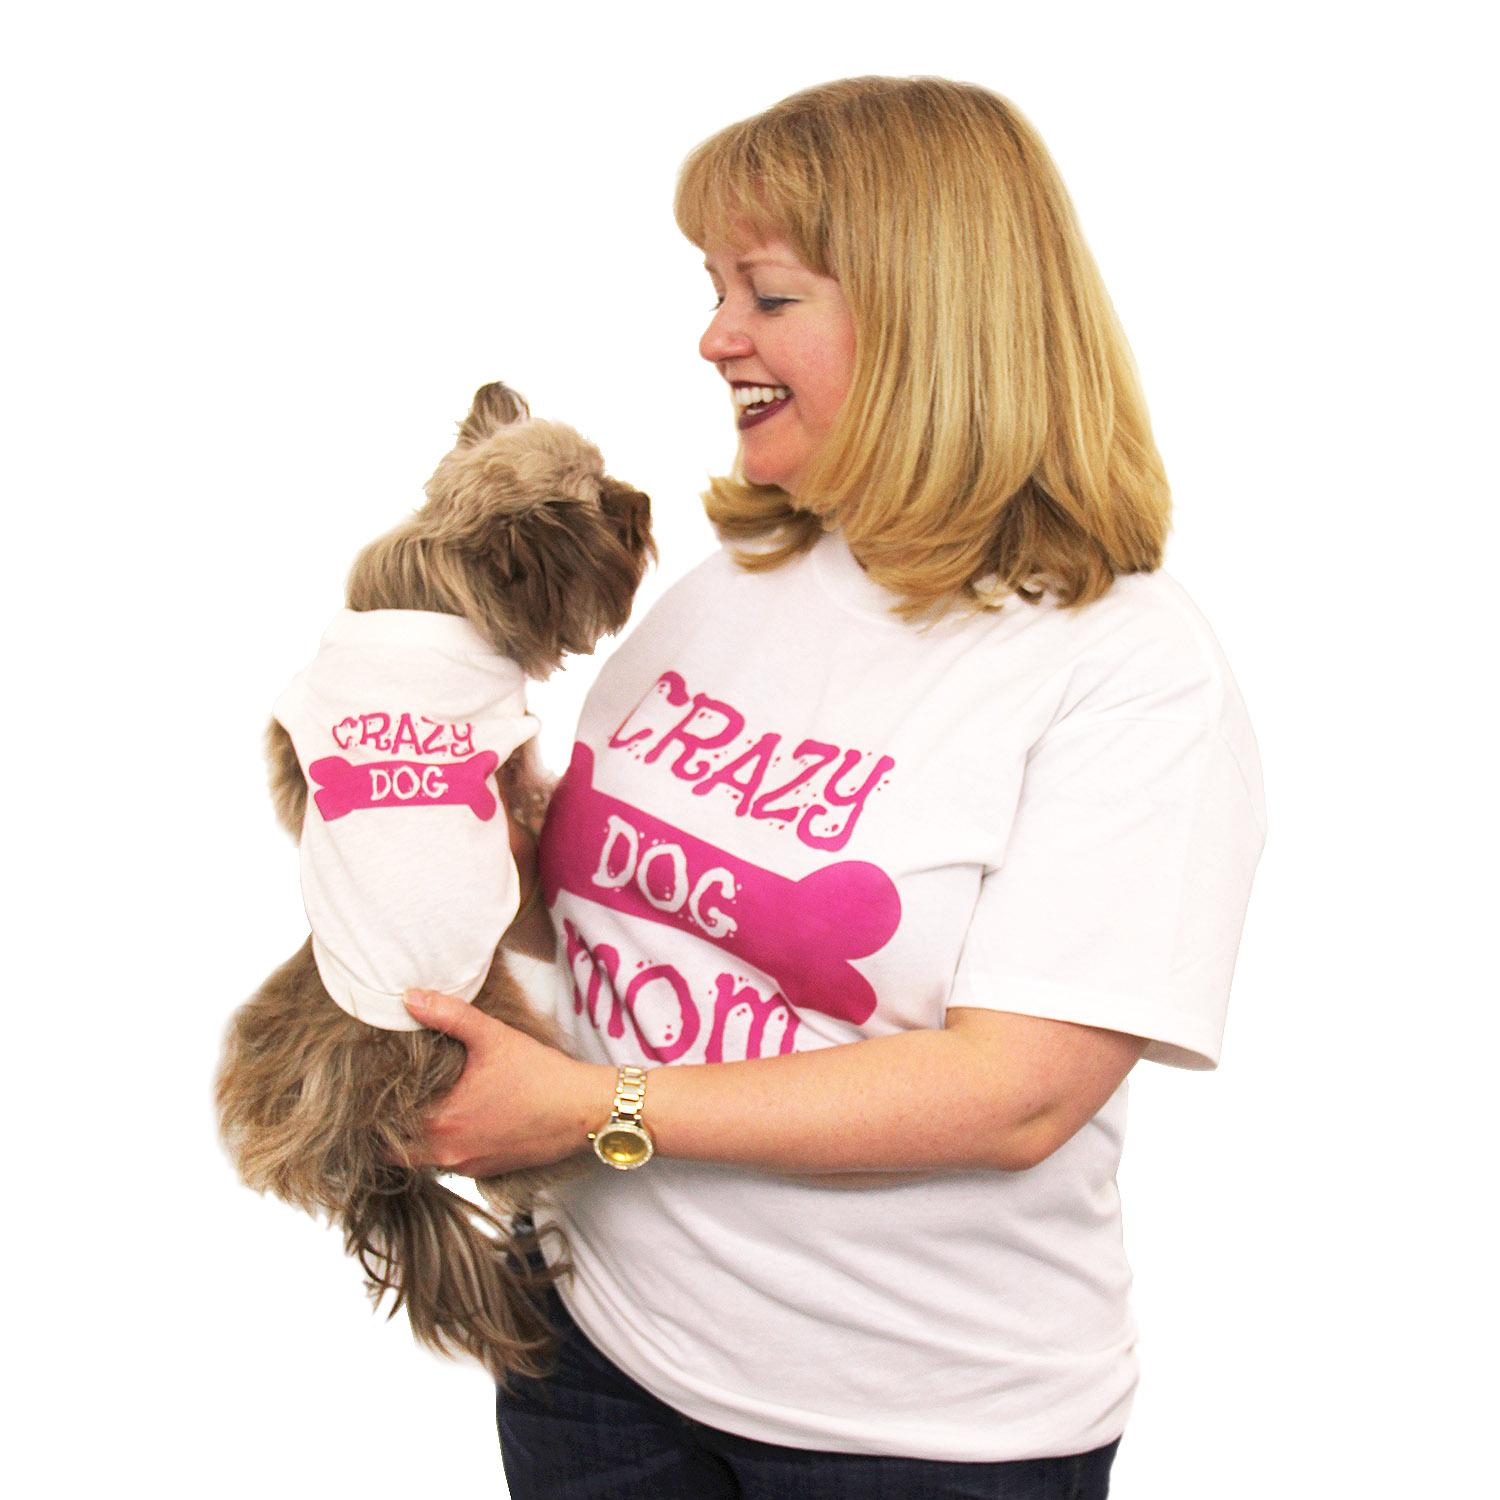 Crazy Dog Shirt / Crazy Dog Mom Human Shirt - White with Pink Print